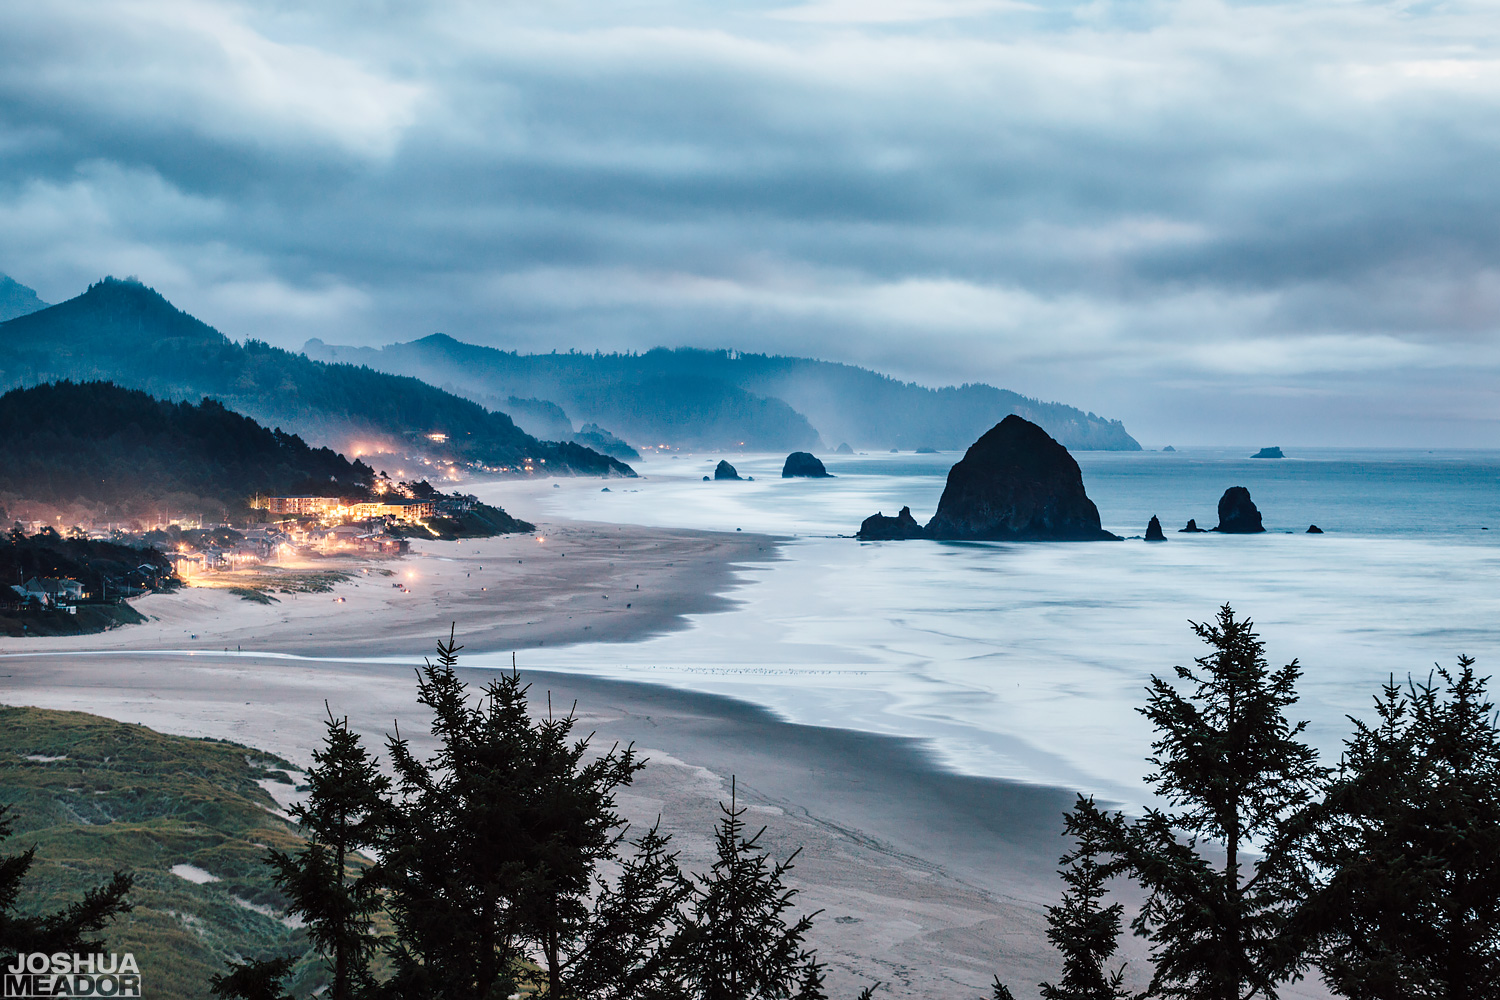 Fog and storm clouds above the mountains and Haystack Rock in Cannon Beach, Oregon. Taken from the edge of Ecola State Park